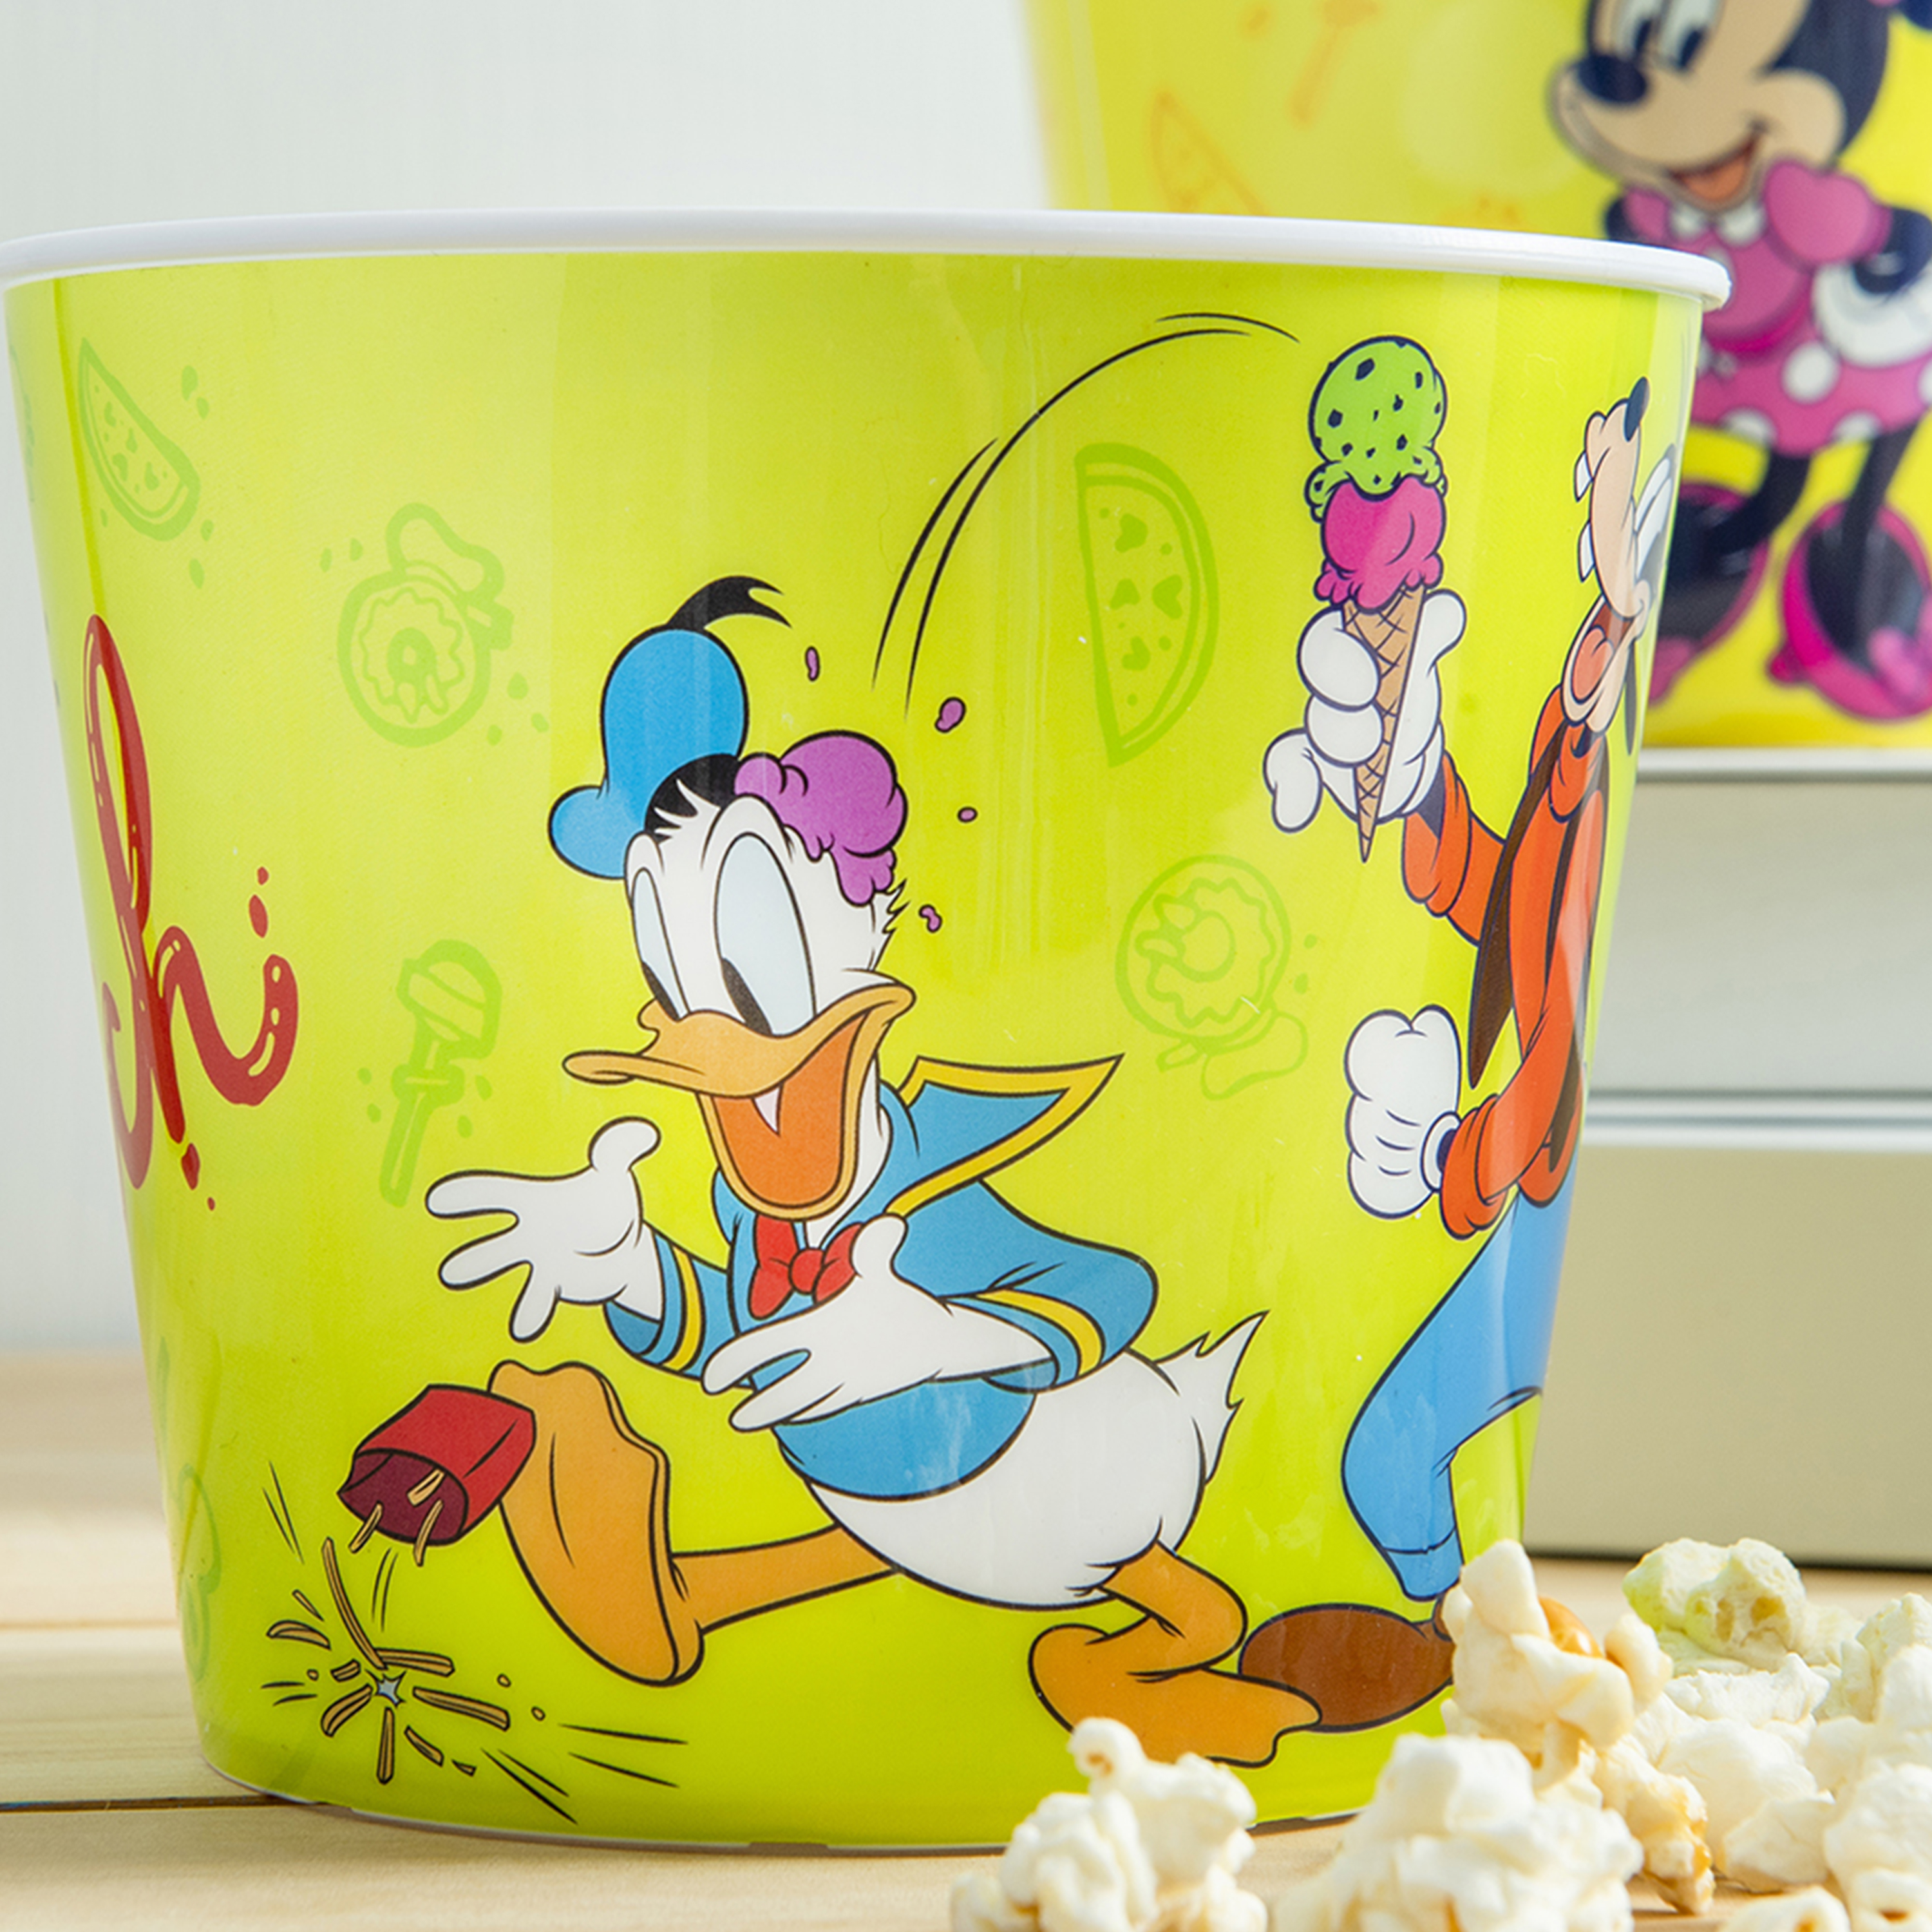 Disney Plastic Popcorn Container and Bowls, Mickey Mouse and Minnie Mouse, 5-piece set slideshow image 3